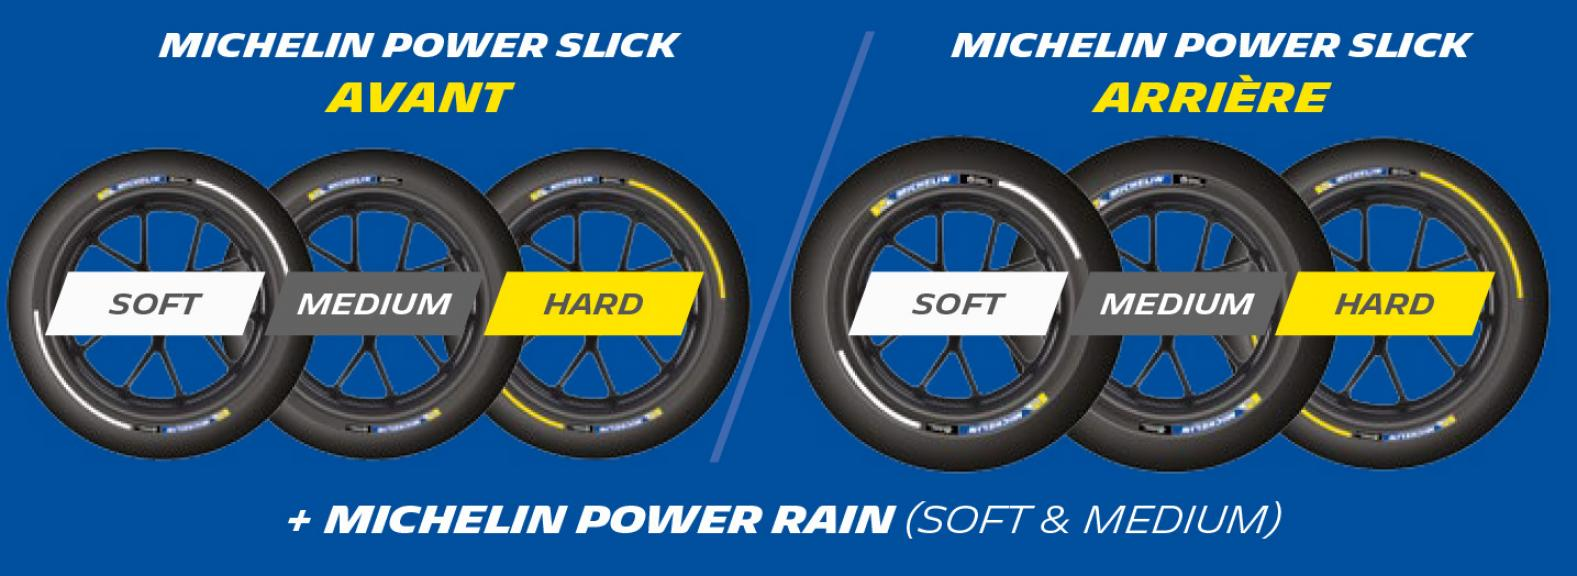 Michelin_French_Germany